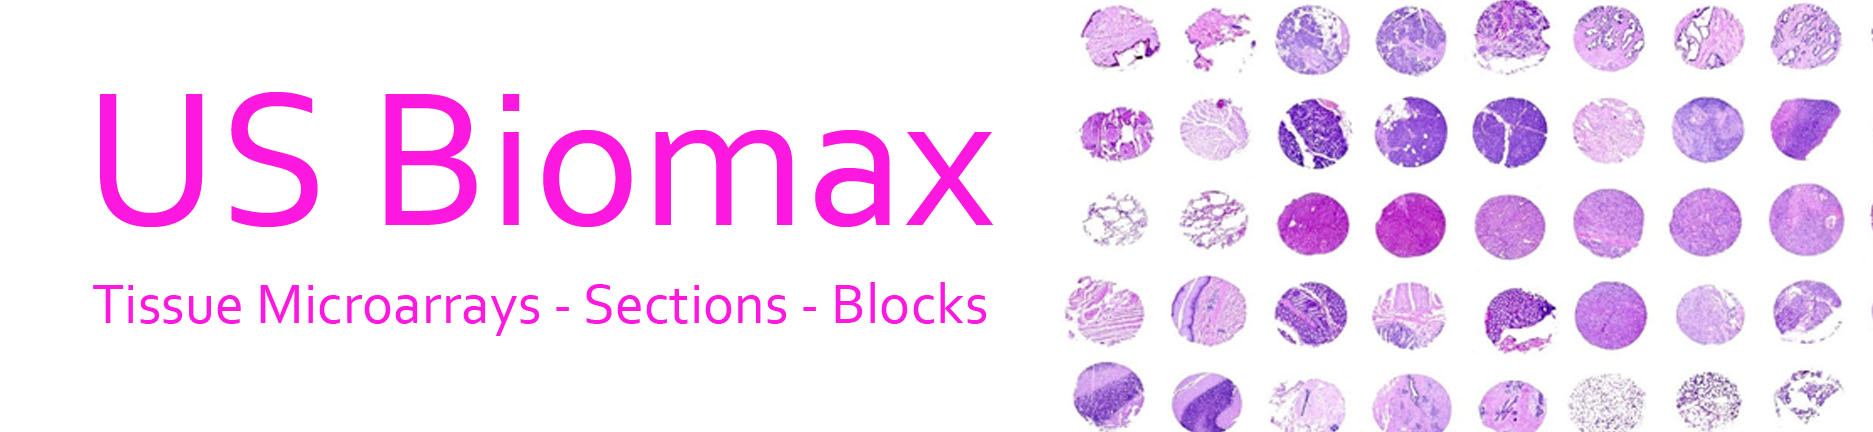 US Biomax